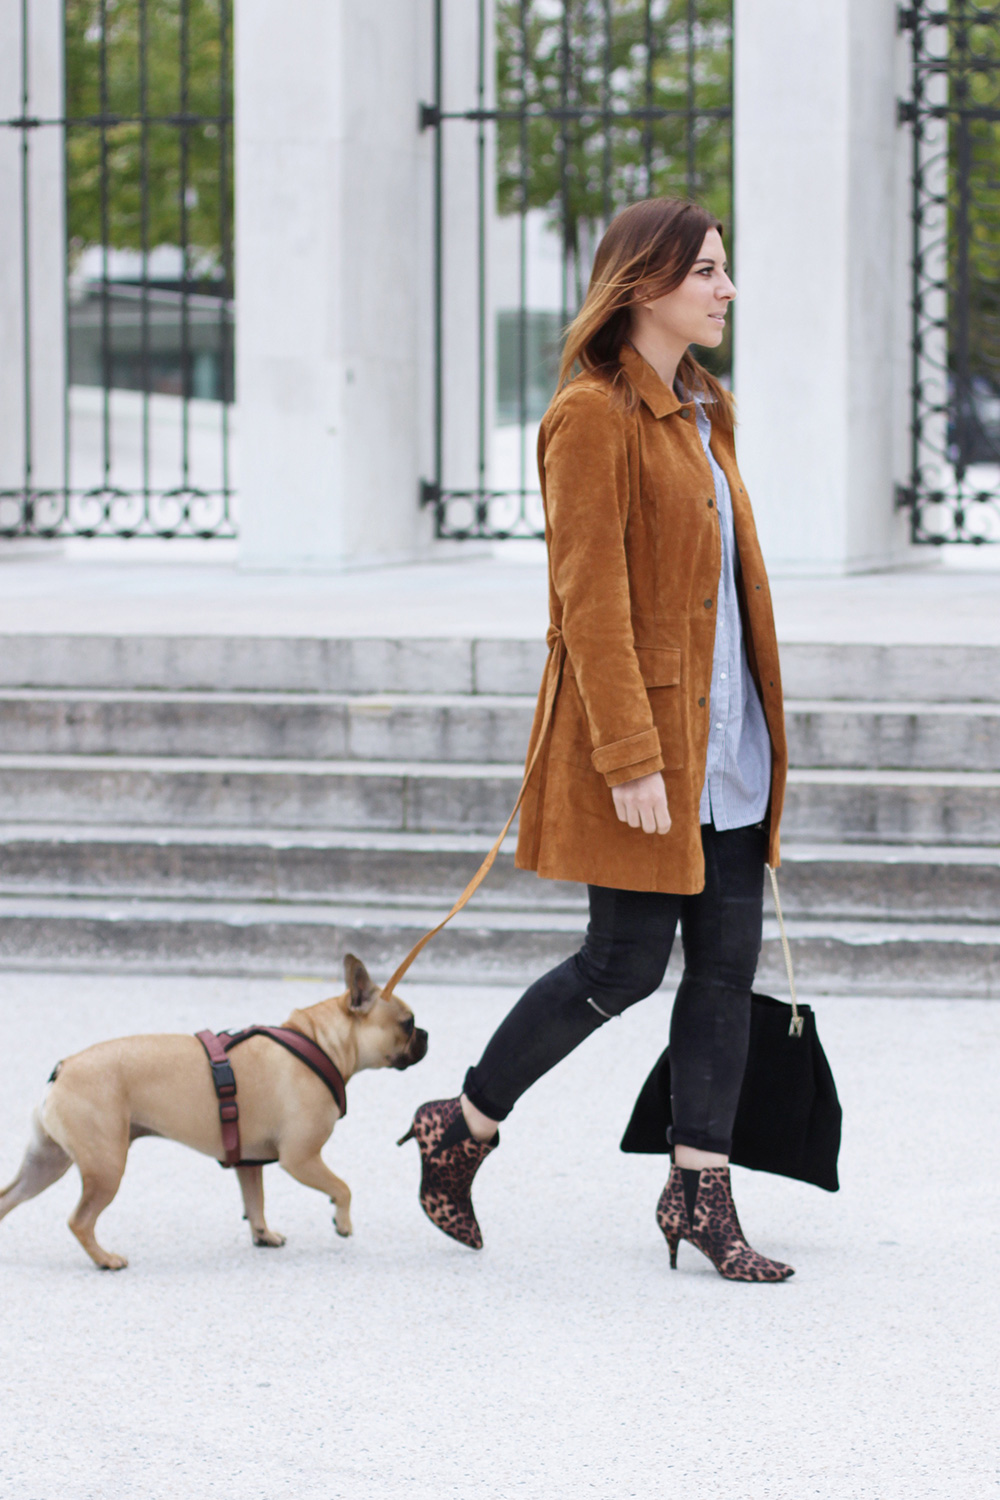 who is mocca, modeblog, fashionblog, wildledermantel zara, wildledermantel kombinieren, outfit of the day, leo boots, river island tasche, frenchie, innsbruck, streetstyle, lederhose, oversize streifenhemd, whoismocca.com